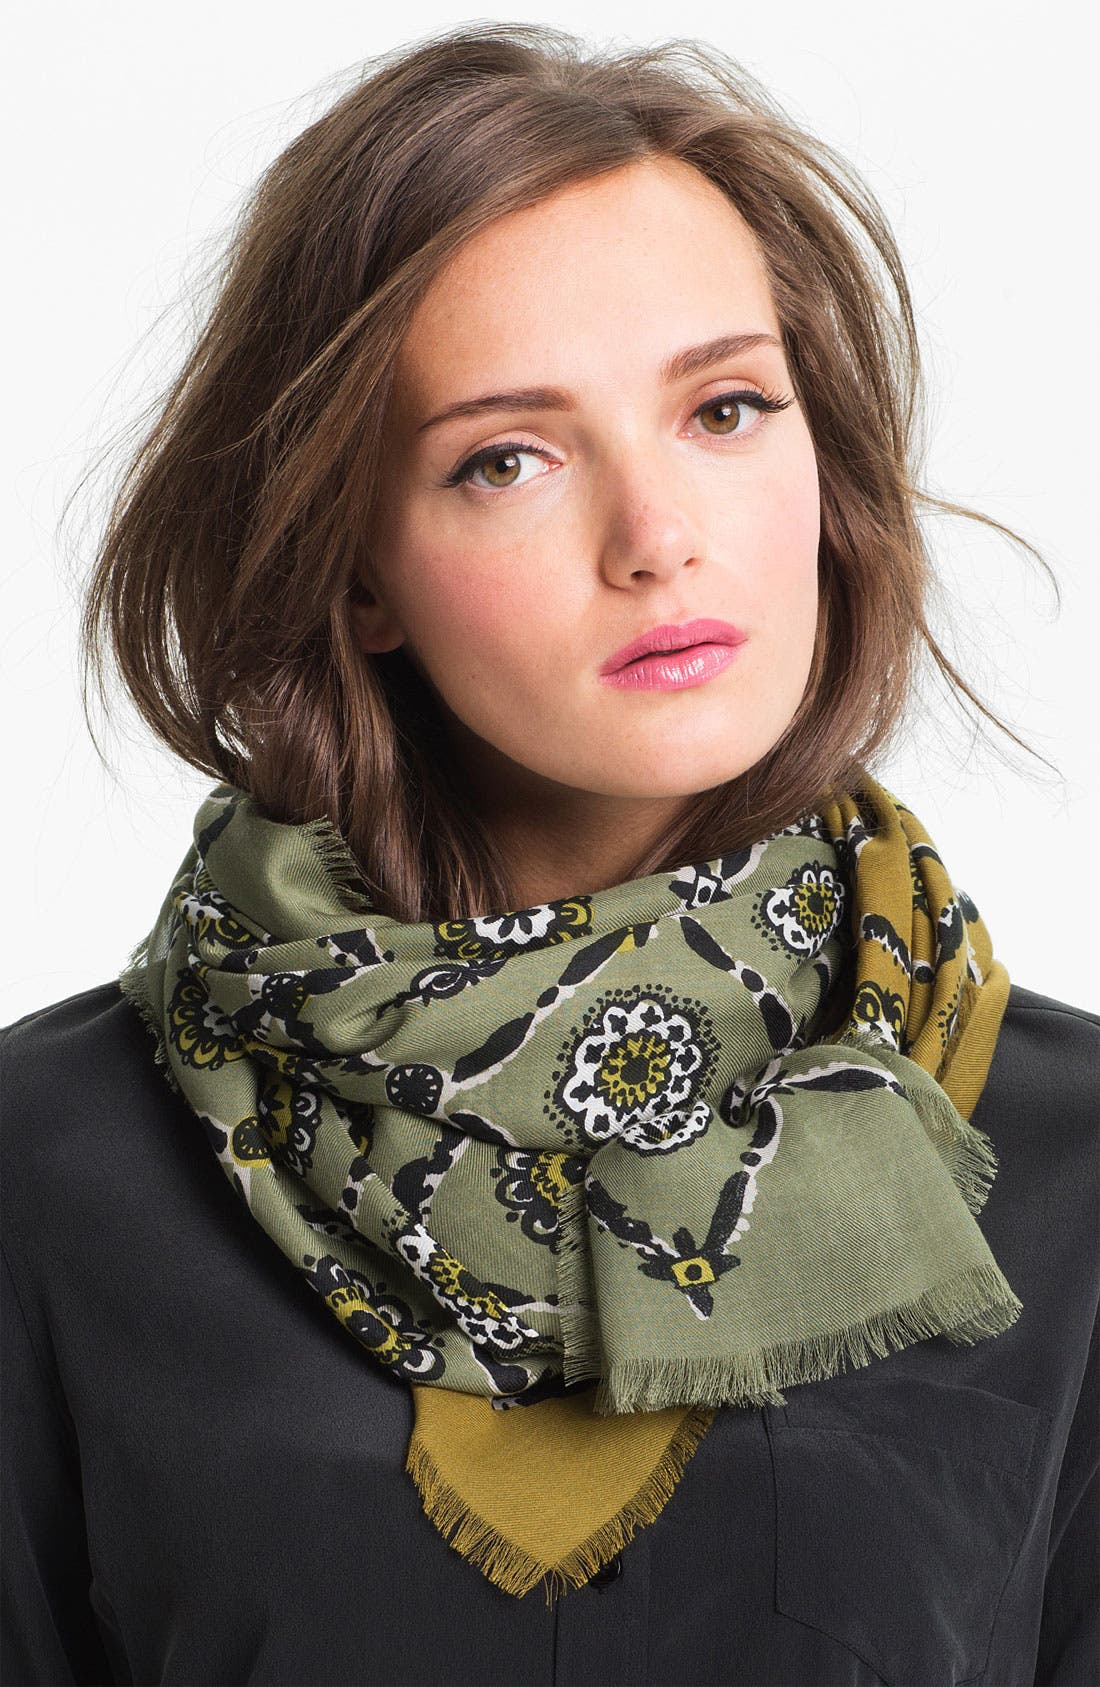 Alternate Image 1 Selected - Burberry Floral Tile Print Scarf